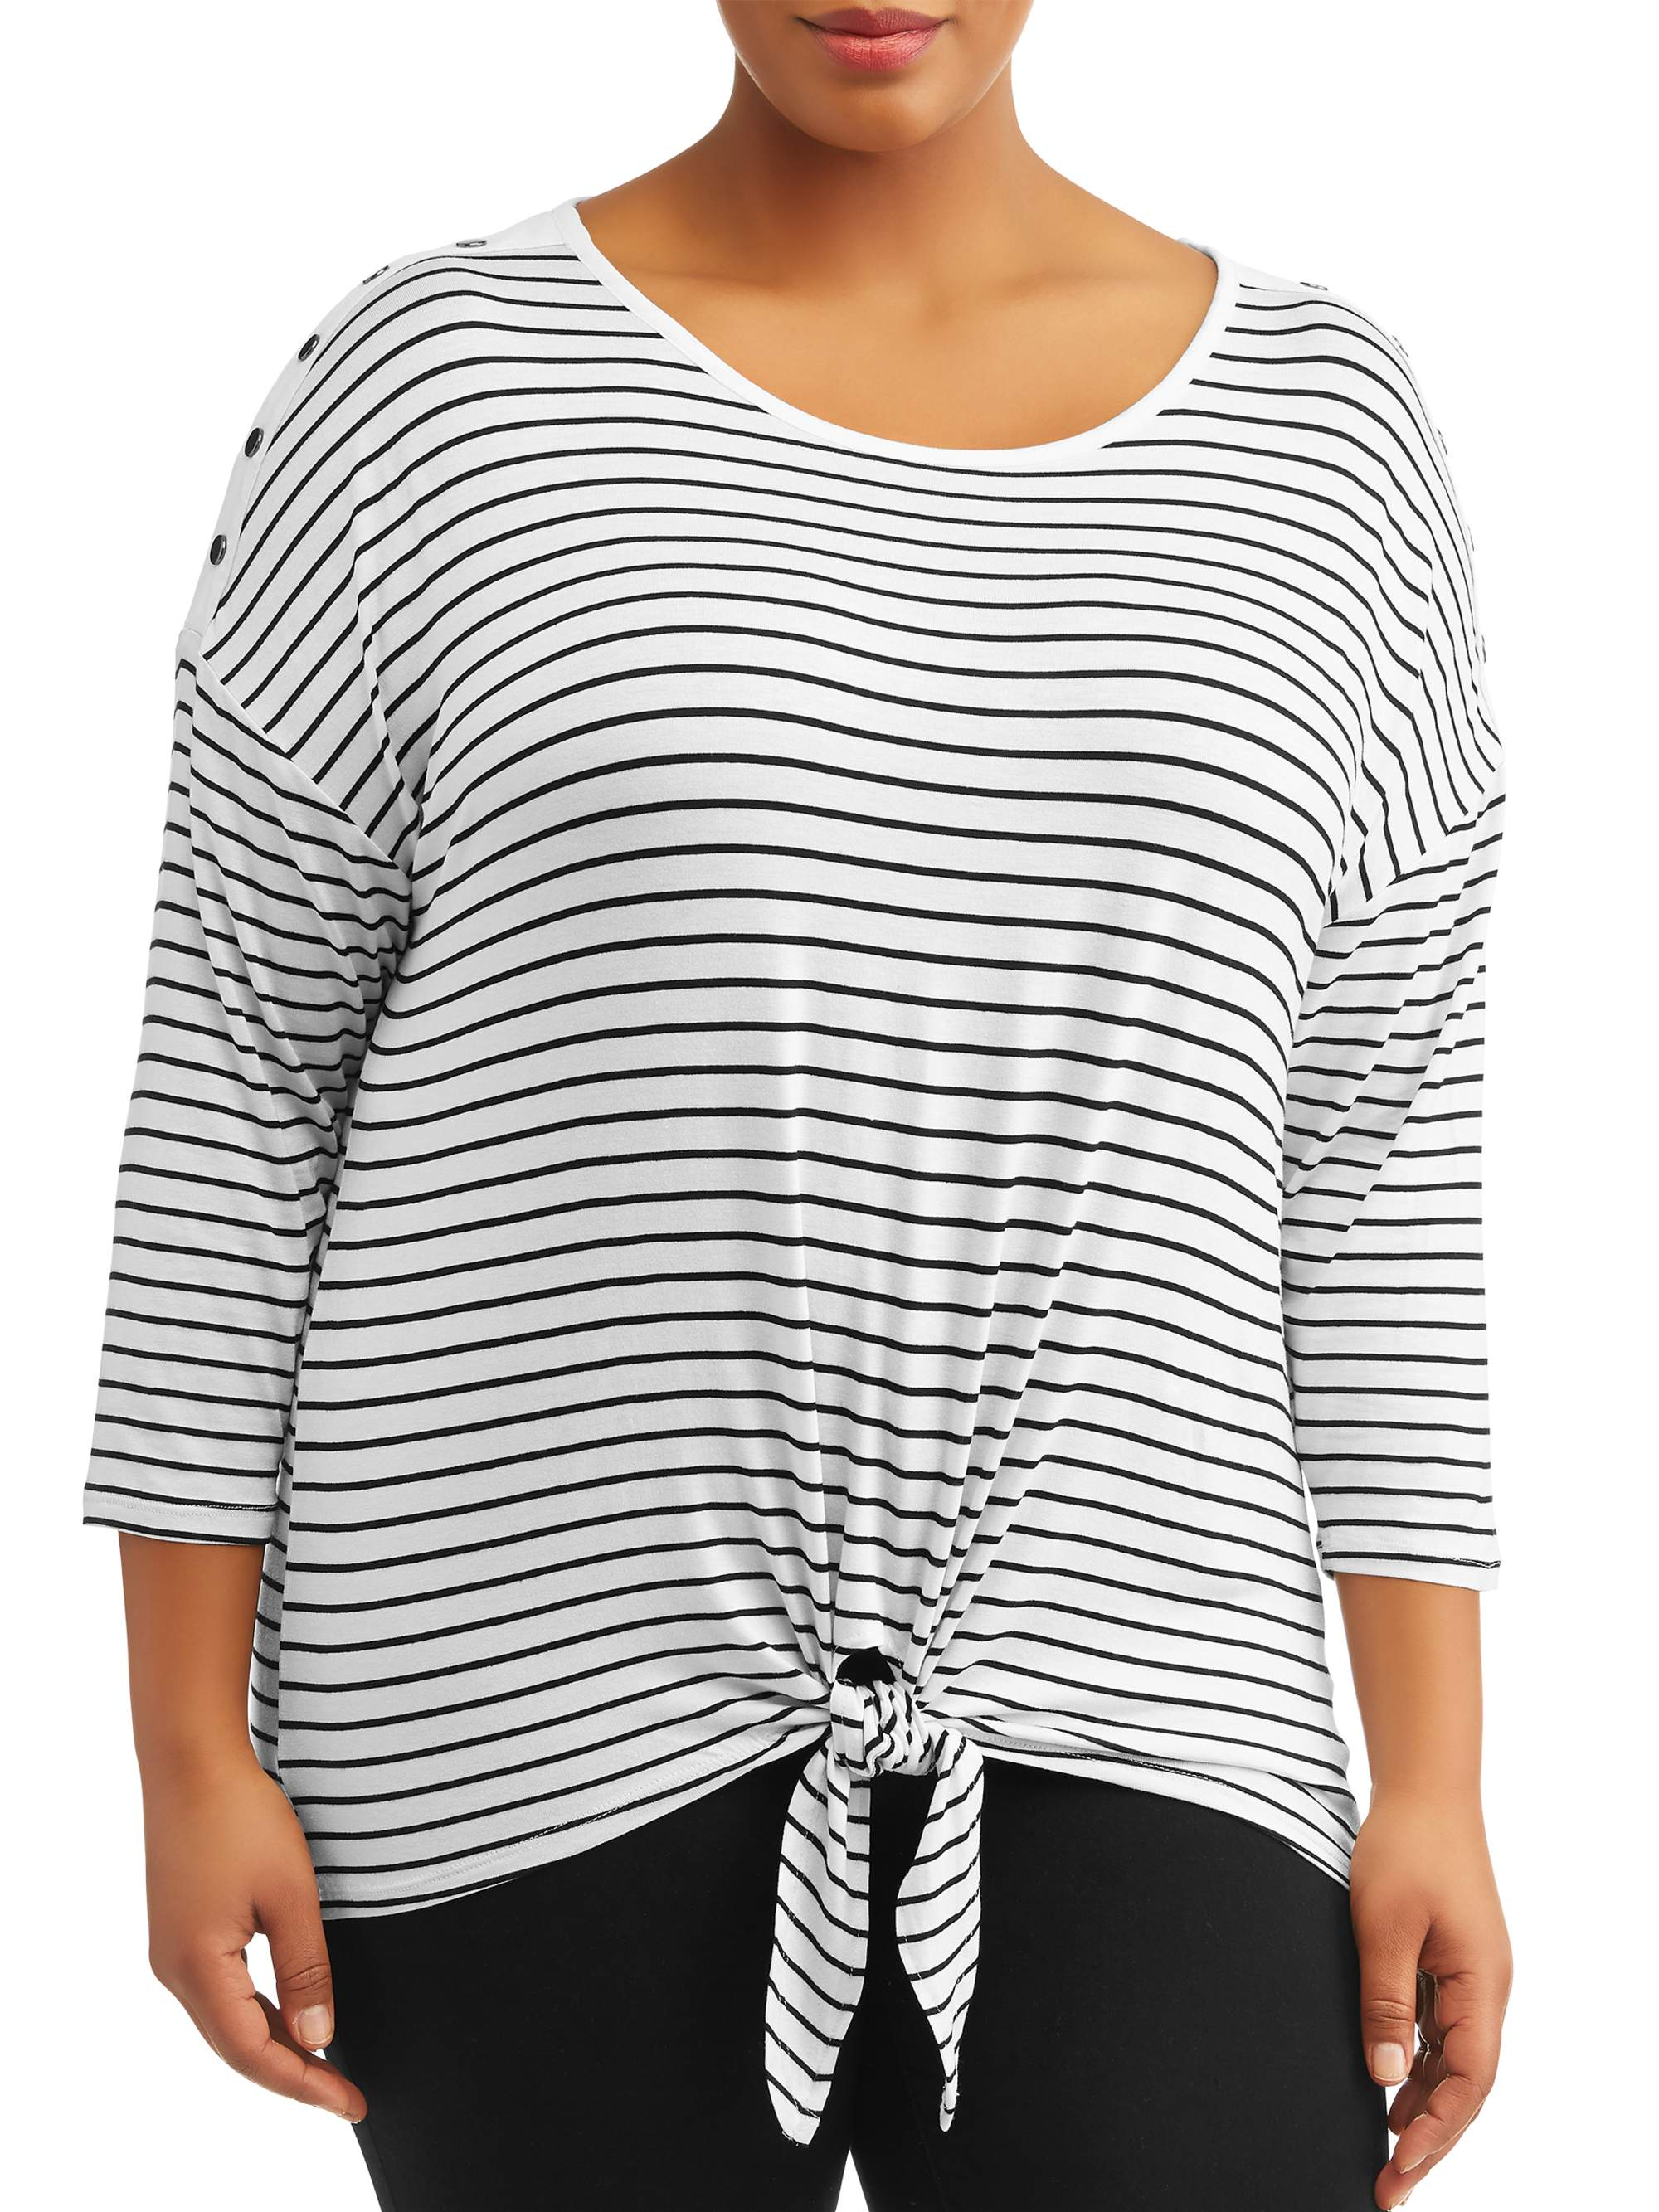 Women's Plus Size 3/4 Sleeve Scoop Neck Stripe Top With Buttons